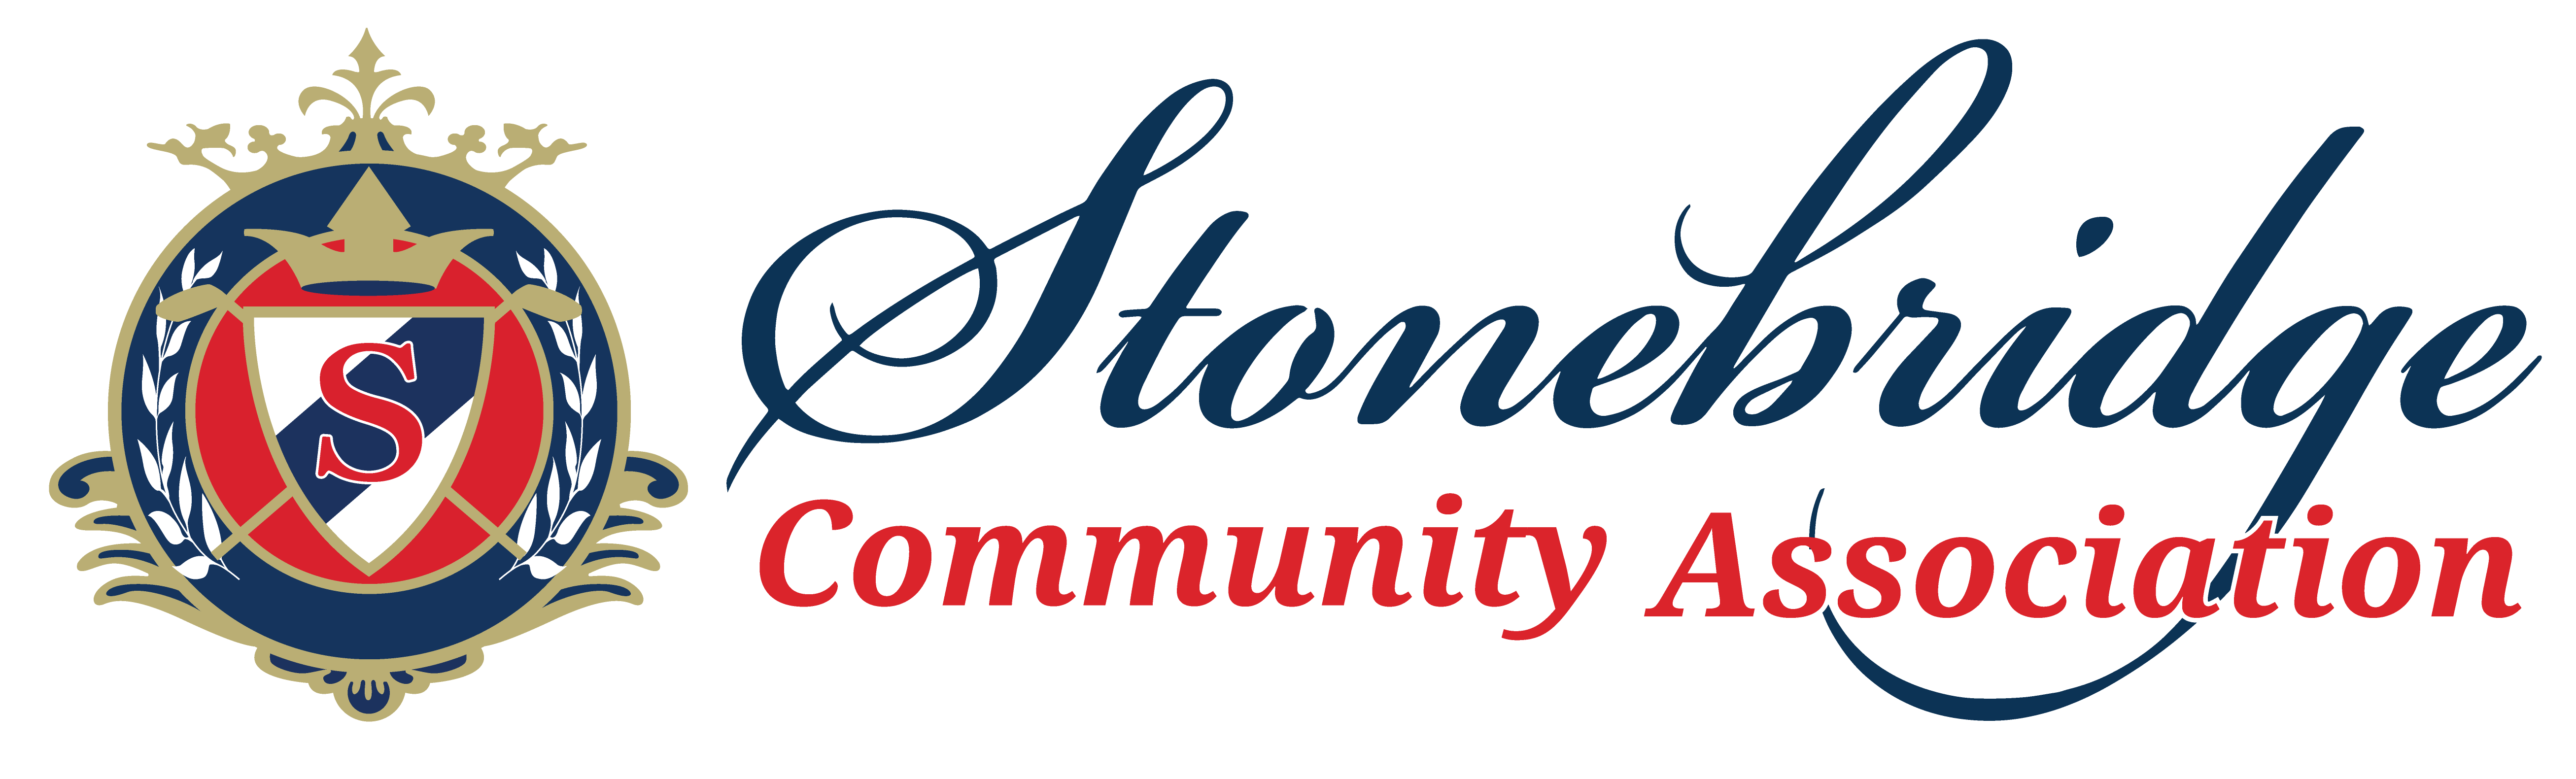 Stonebridge Community Association